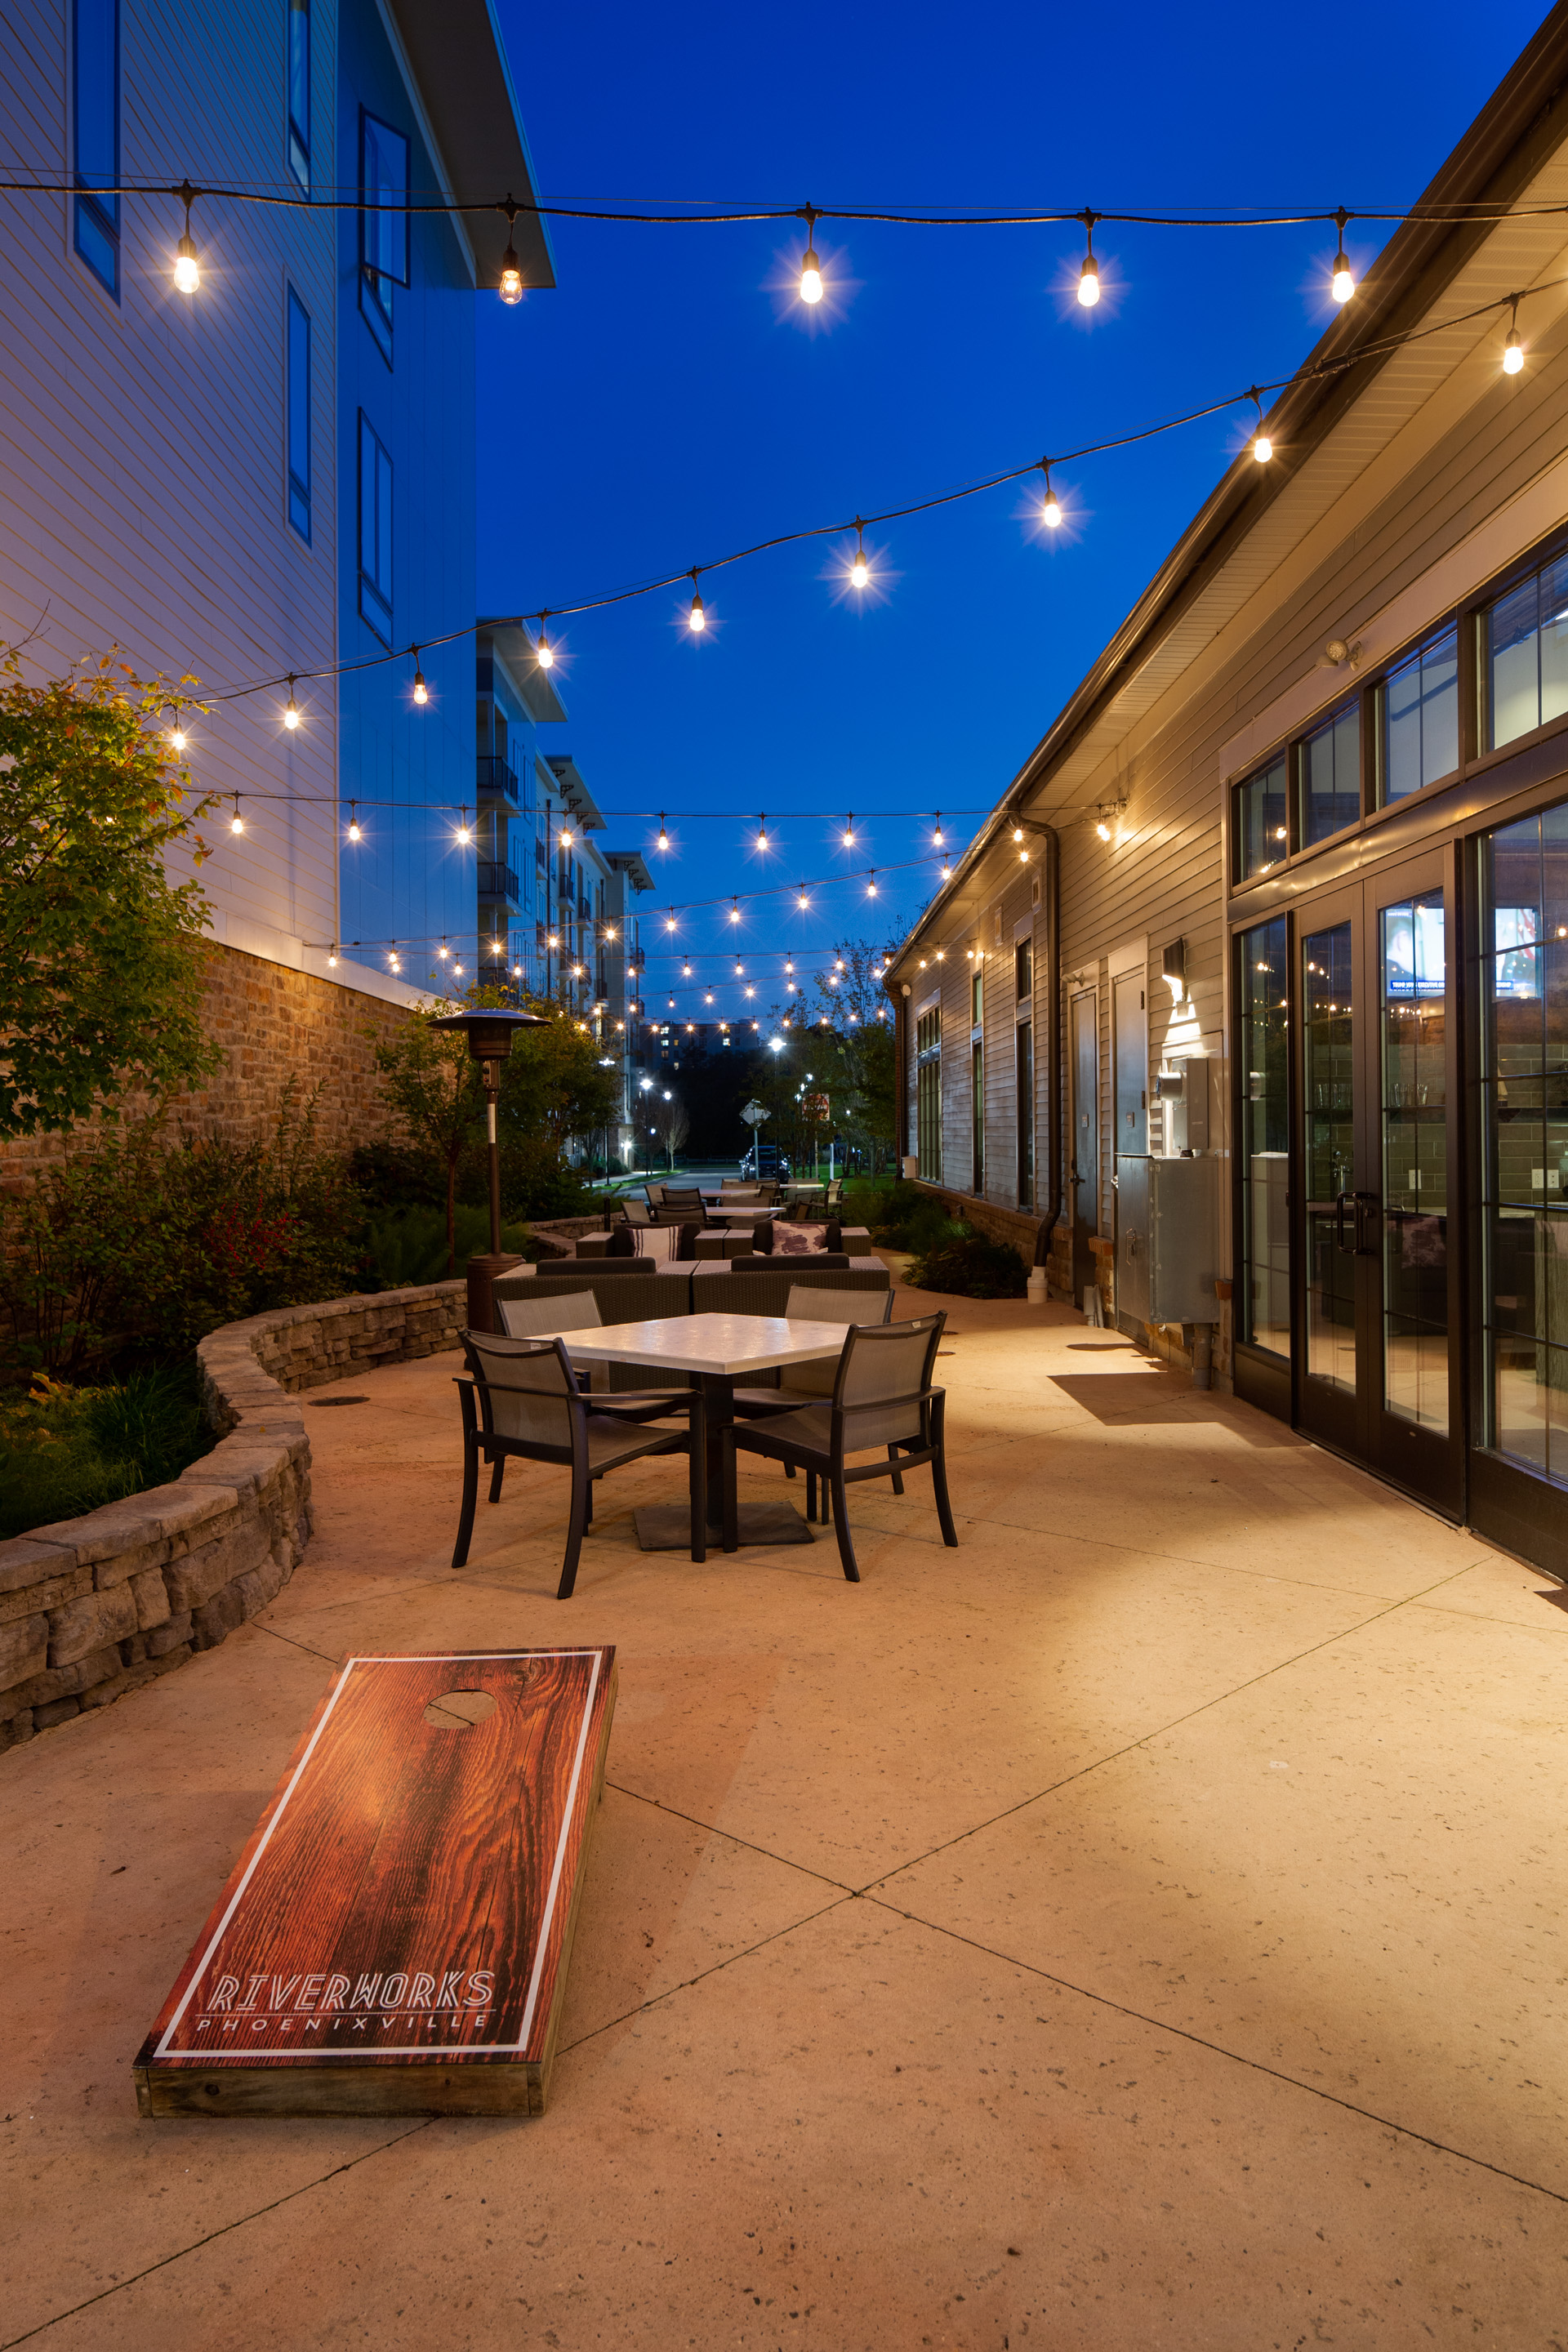 The evening awaits….Riverworks Apartments in Phoenixville.